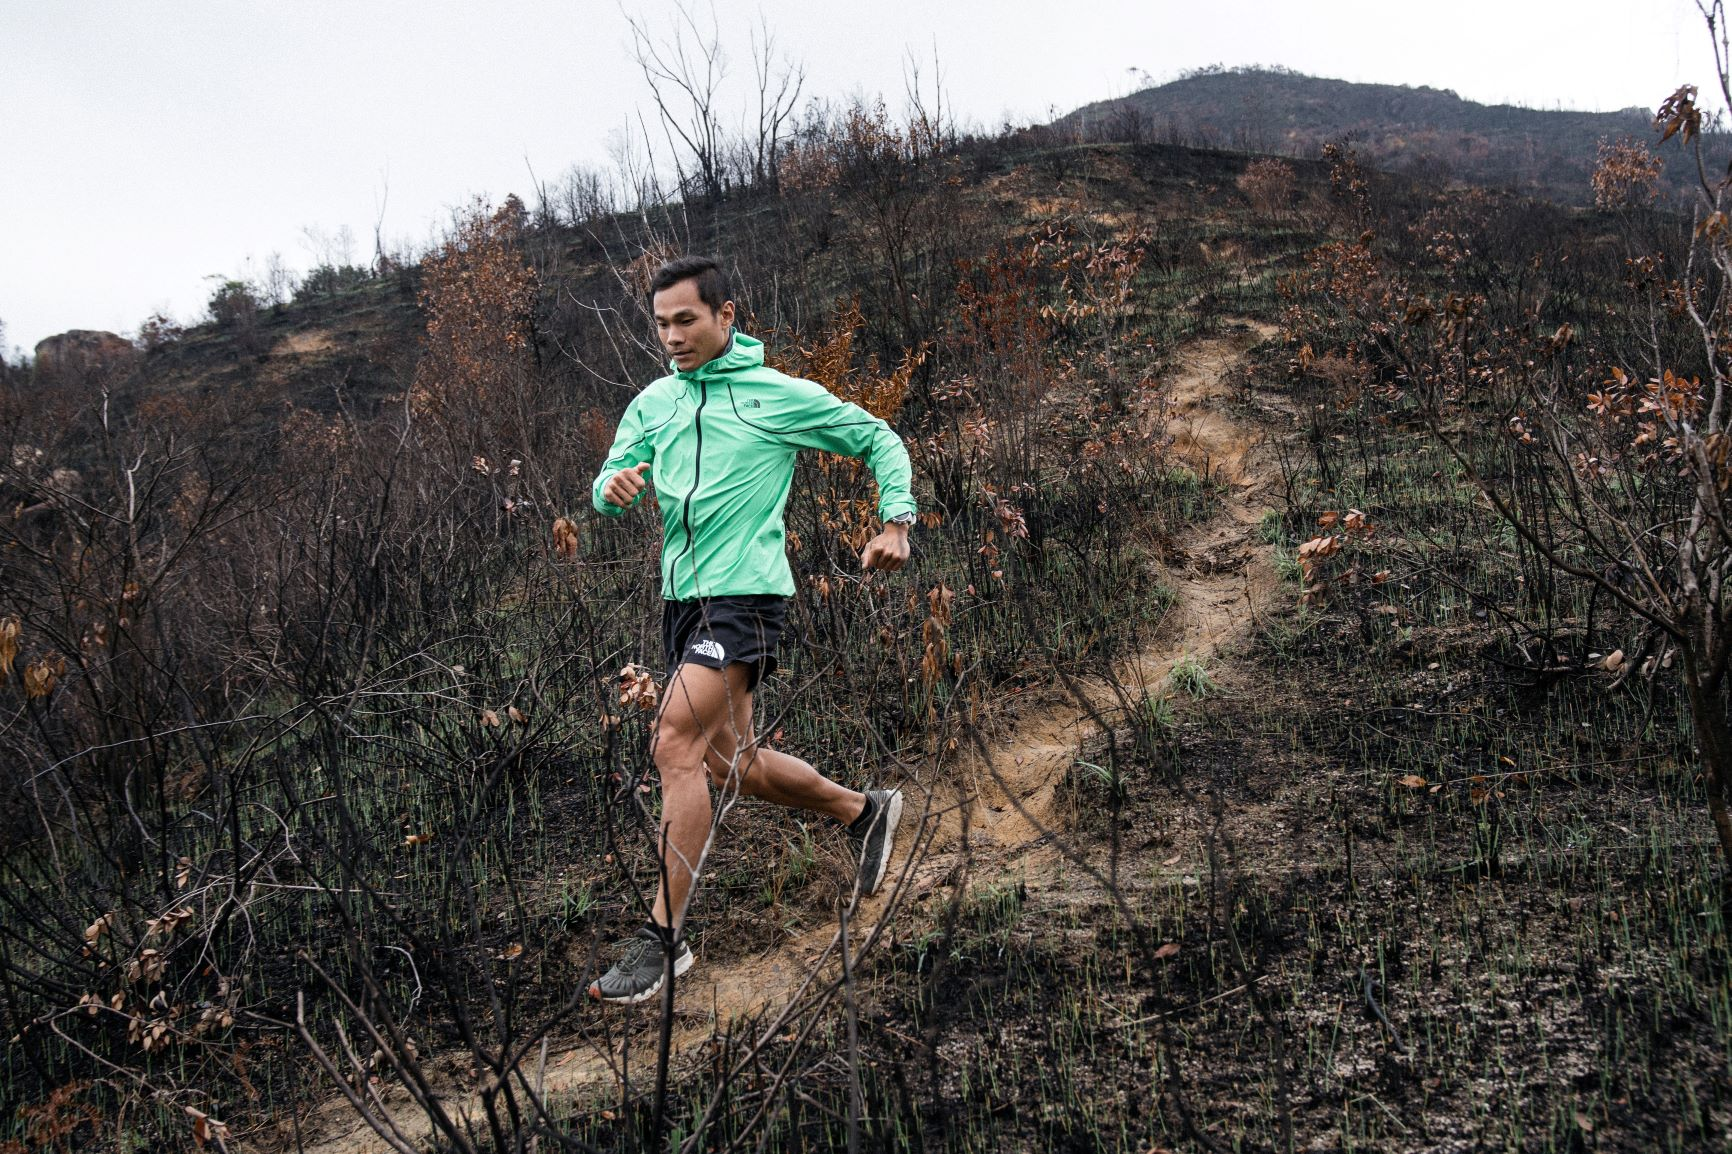 Let's Talk about Climate Change: Hong Kong's top runner Wong Ho-chung loves nature through respect